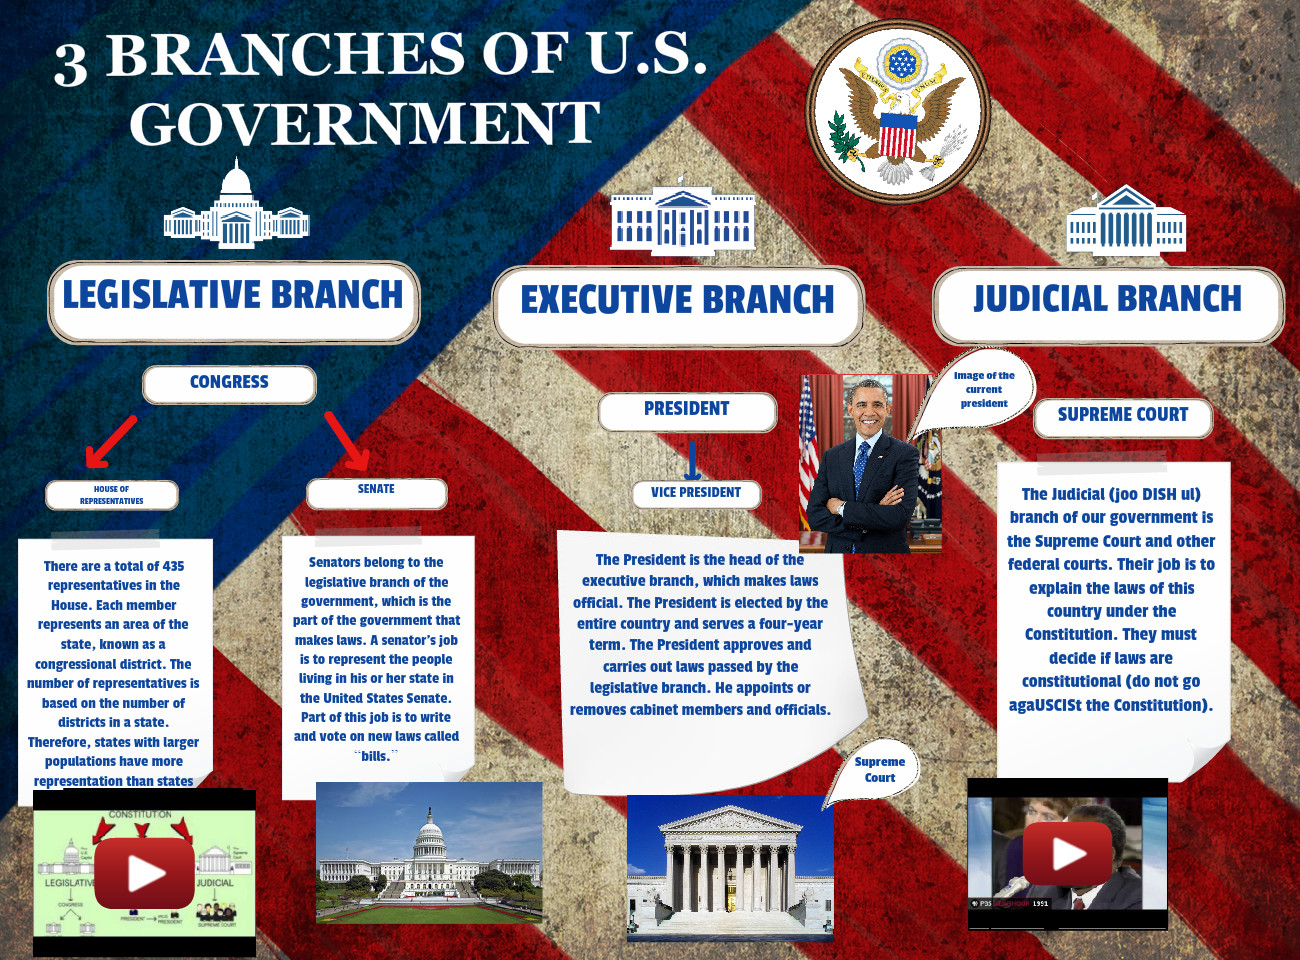 [2015] Marcos Hinojos: 3 Branches of U.S. Government